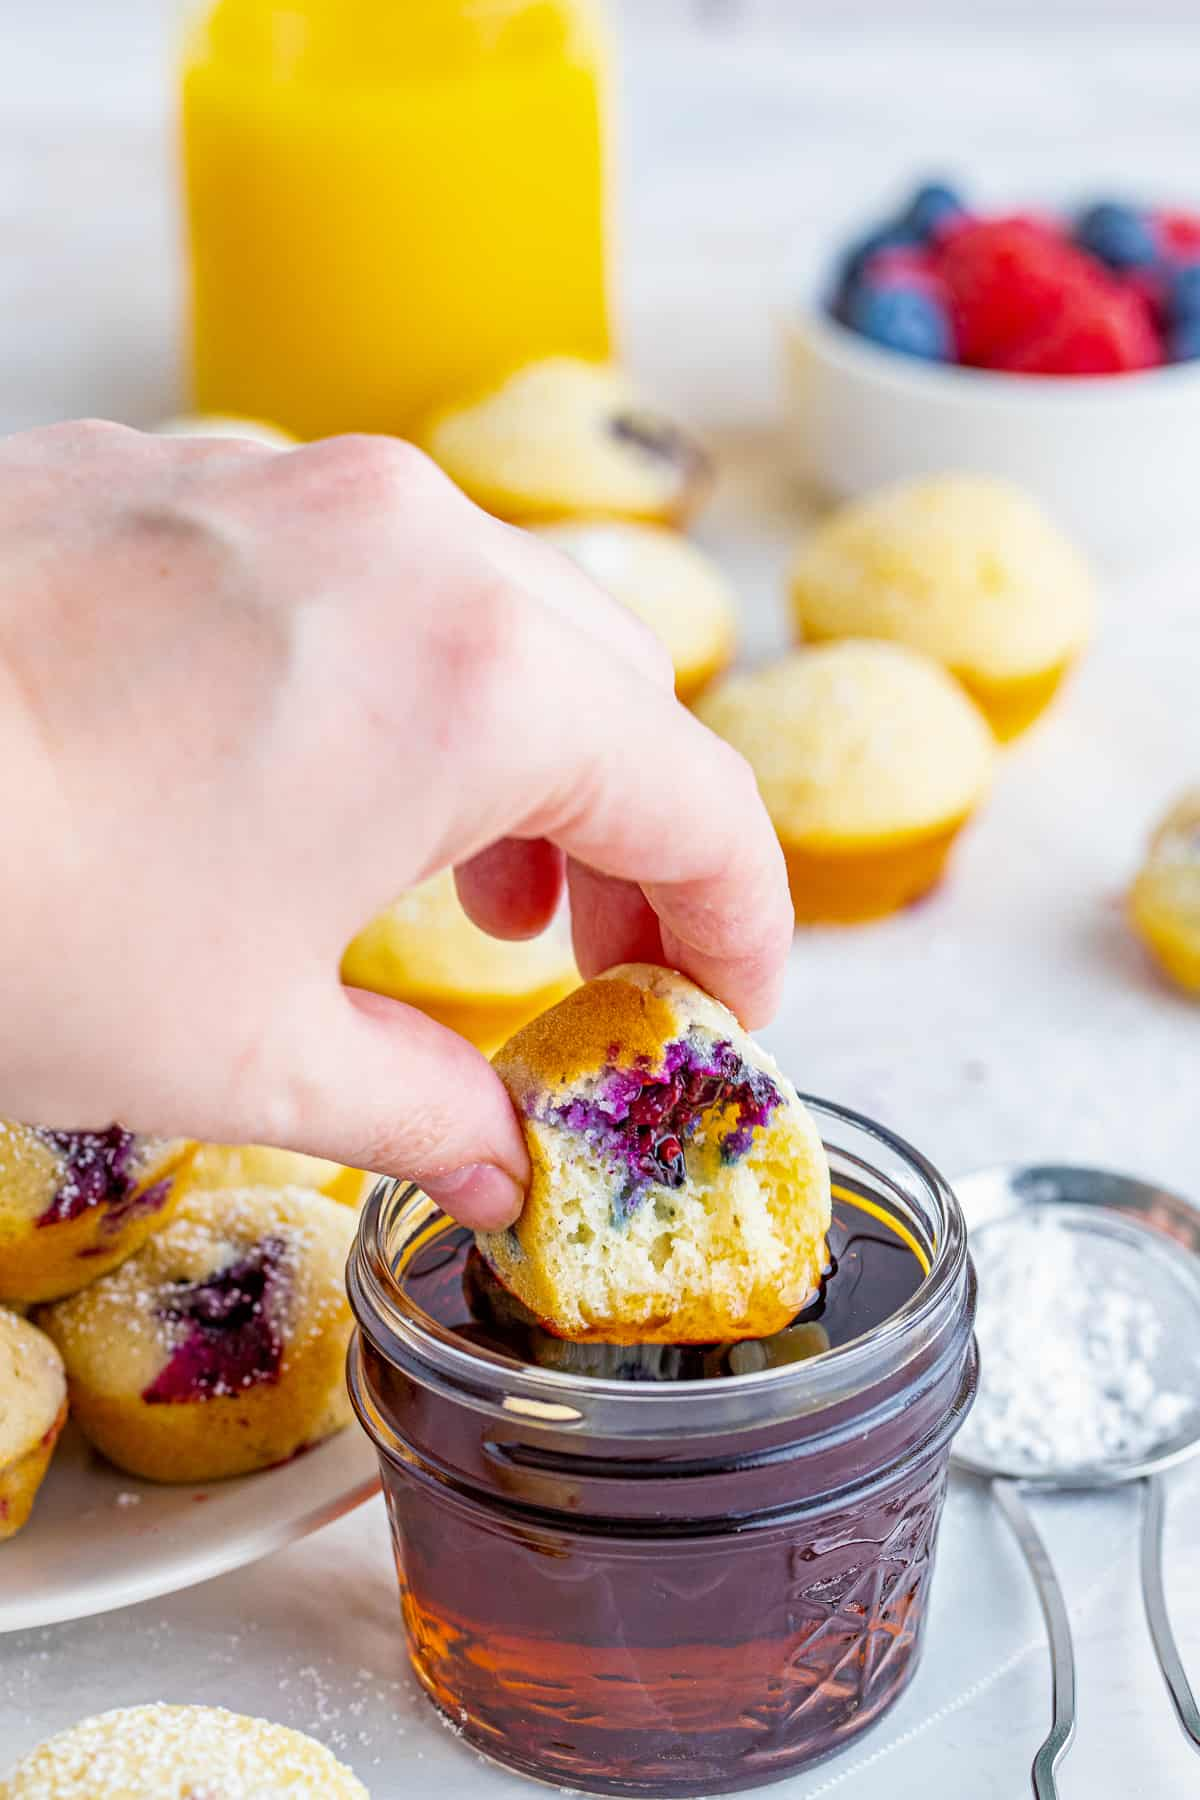 Hand dipping one Berry Pancake Bites in syrup